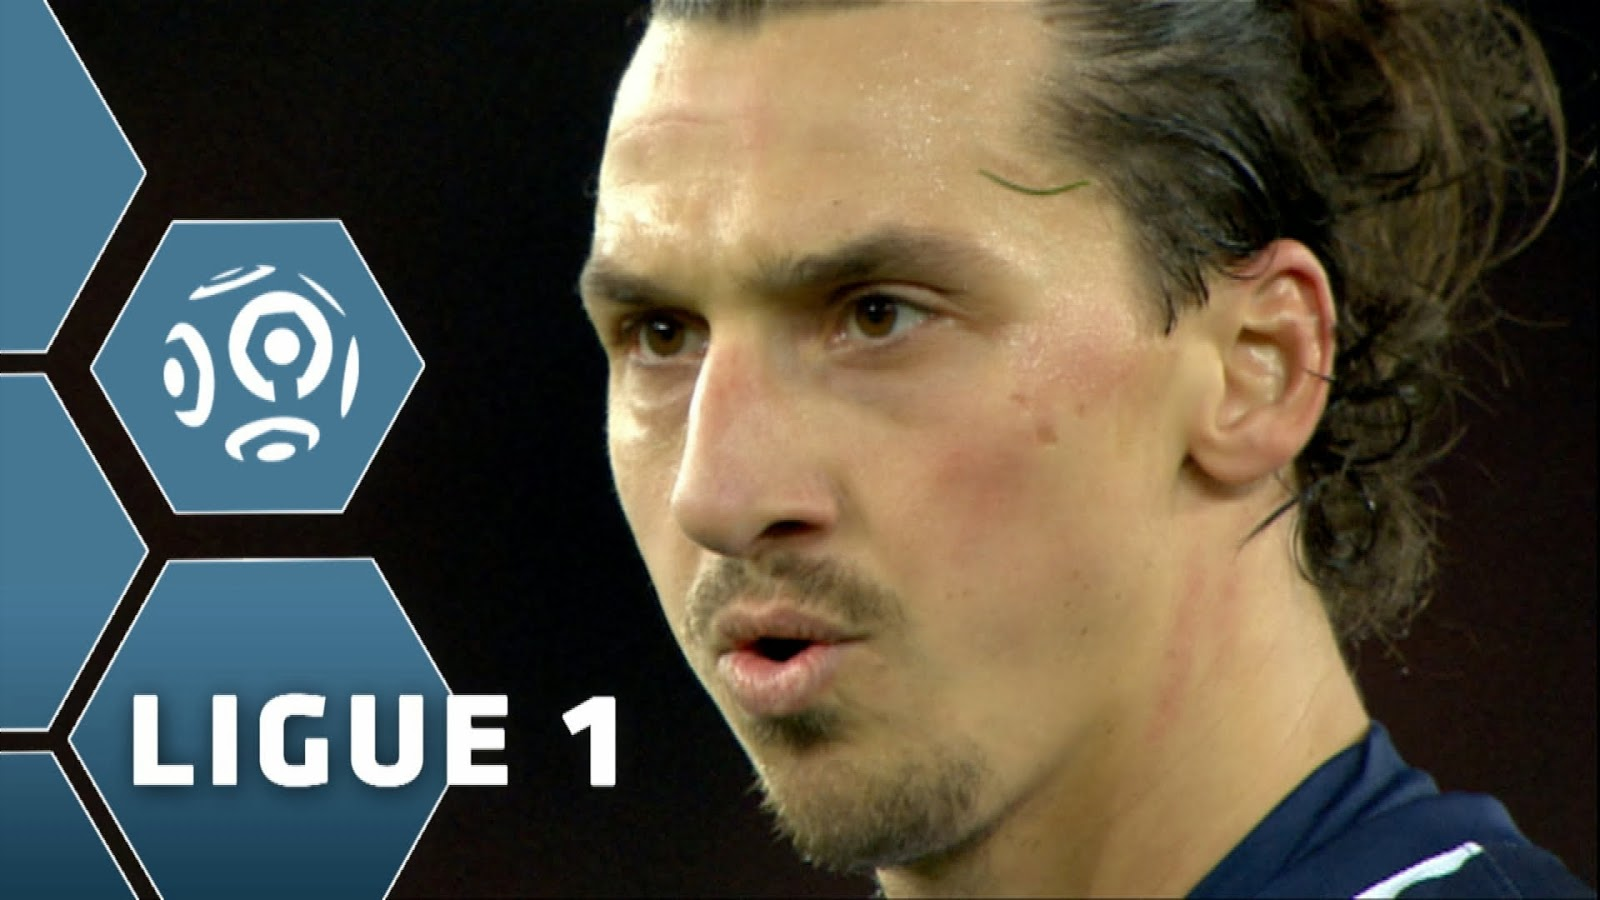 Zlatan Ibrahimovic HD Wallpaper